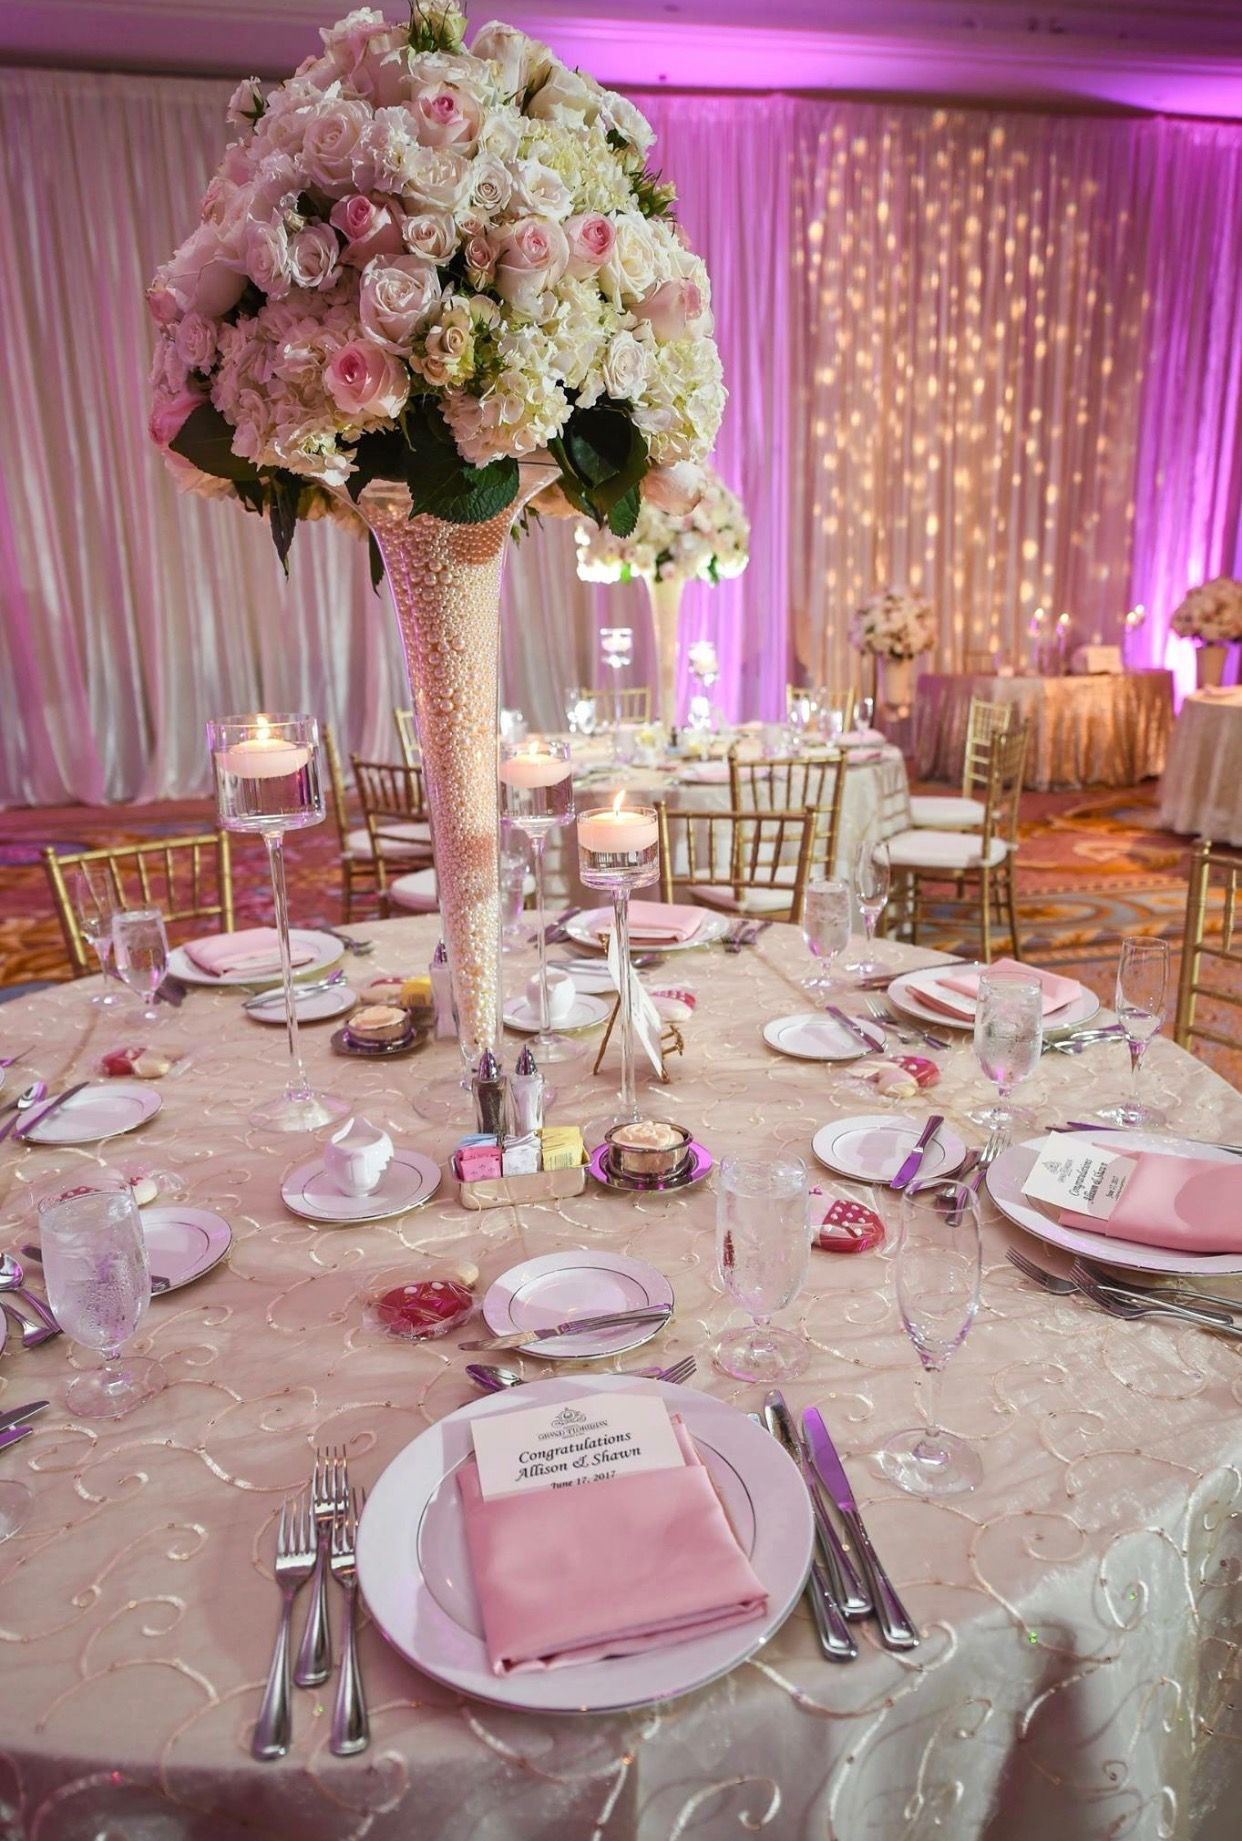 BlueHost.com | Romantic theme wedding, Blush wedding colors, Disney world  wedding